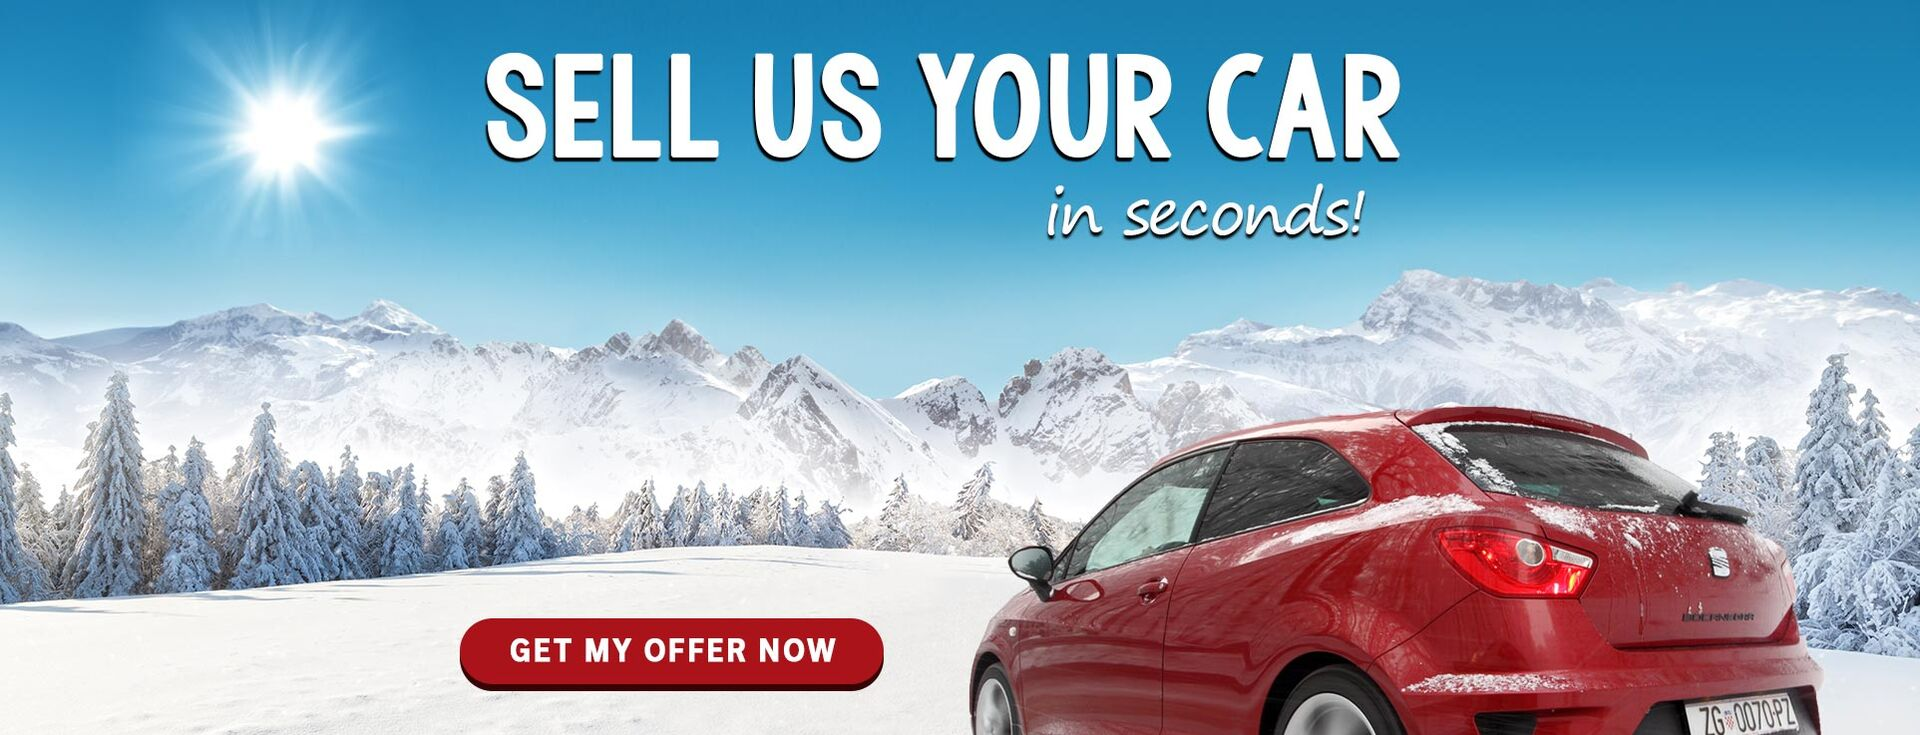 Winter - Sell us your car